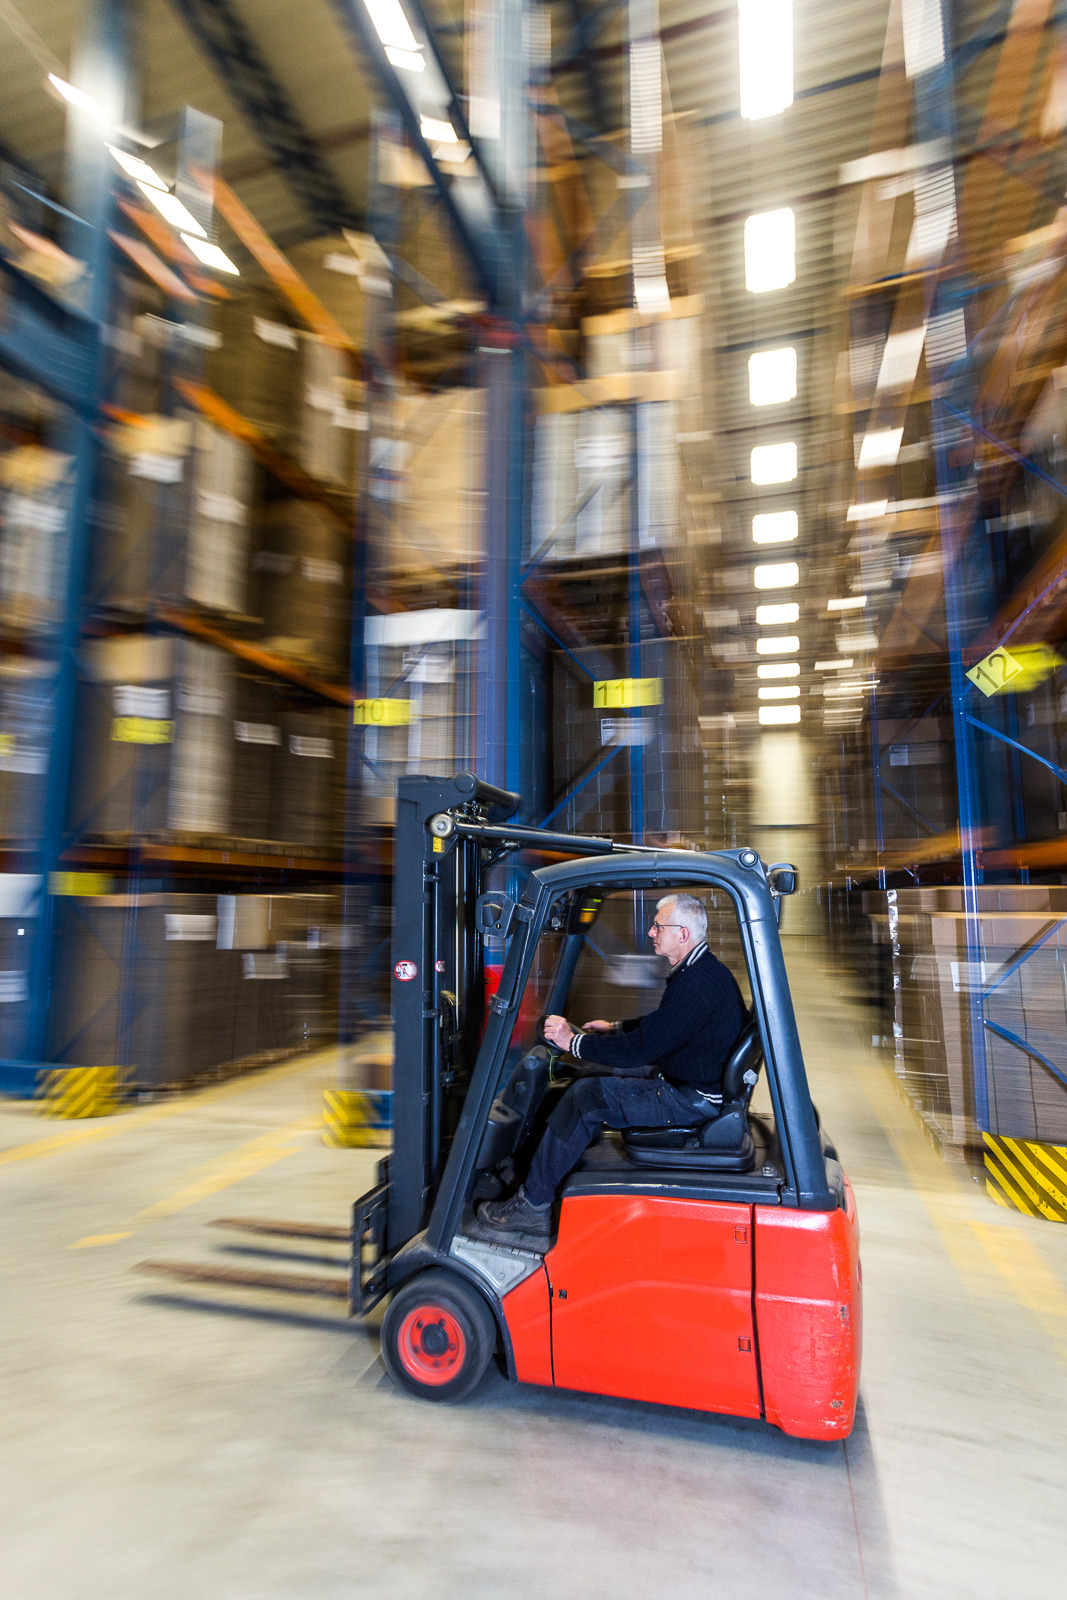 A man driving a forklift trough a warehouse